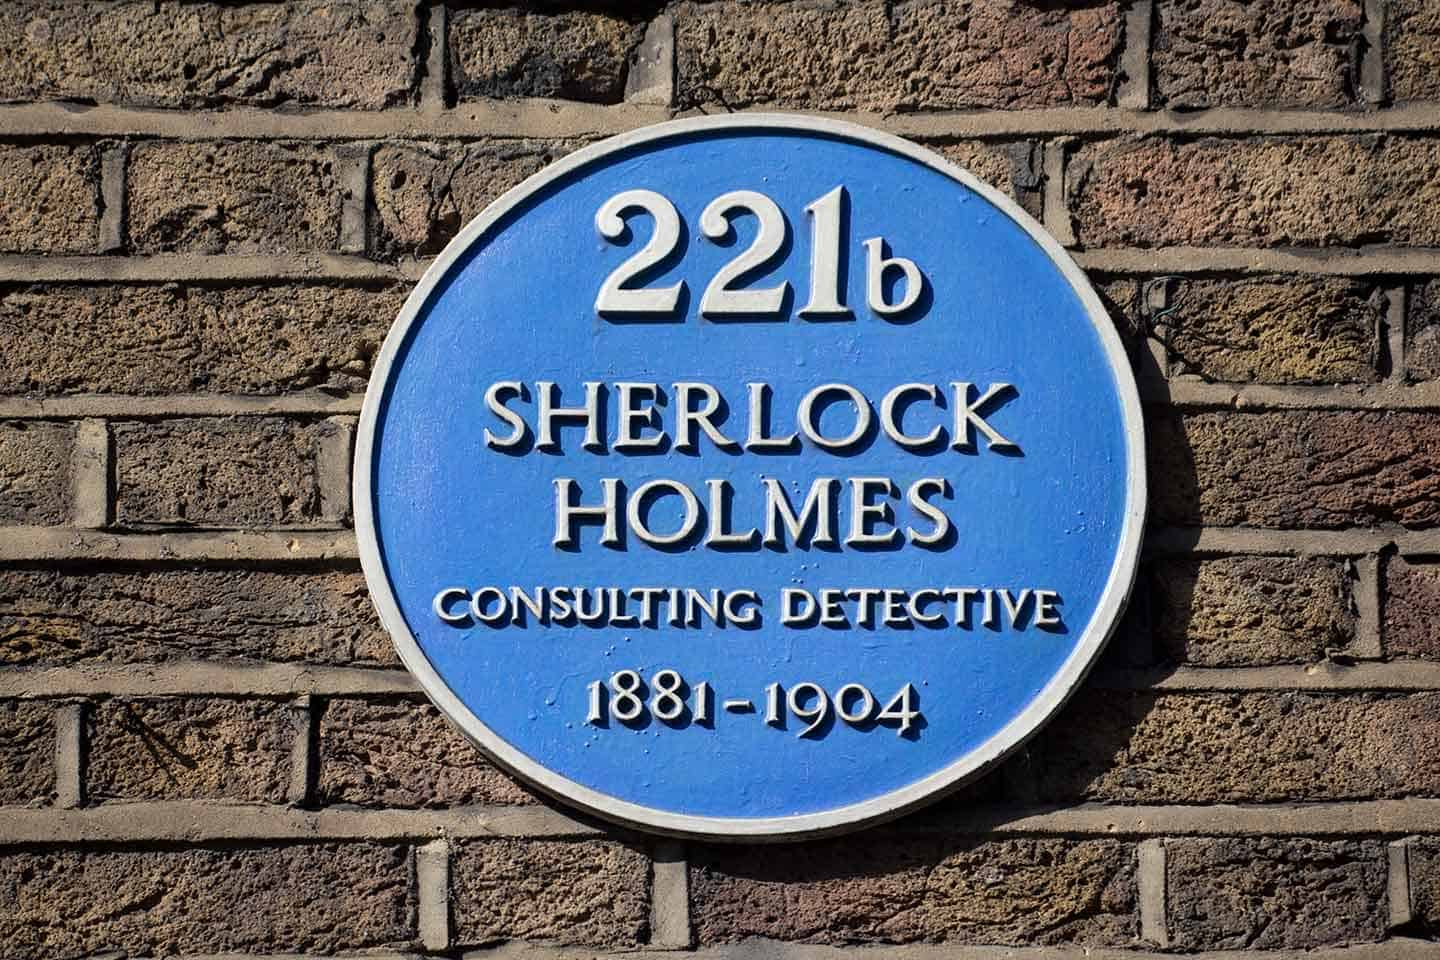 Image of the blue plaque marking the residence of fictional detective Sherlock Holmes